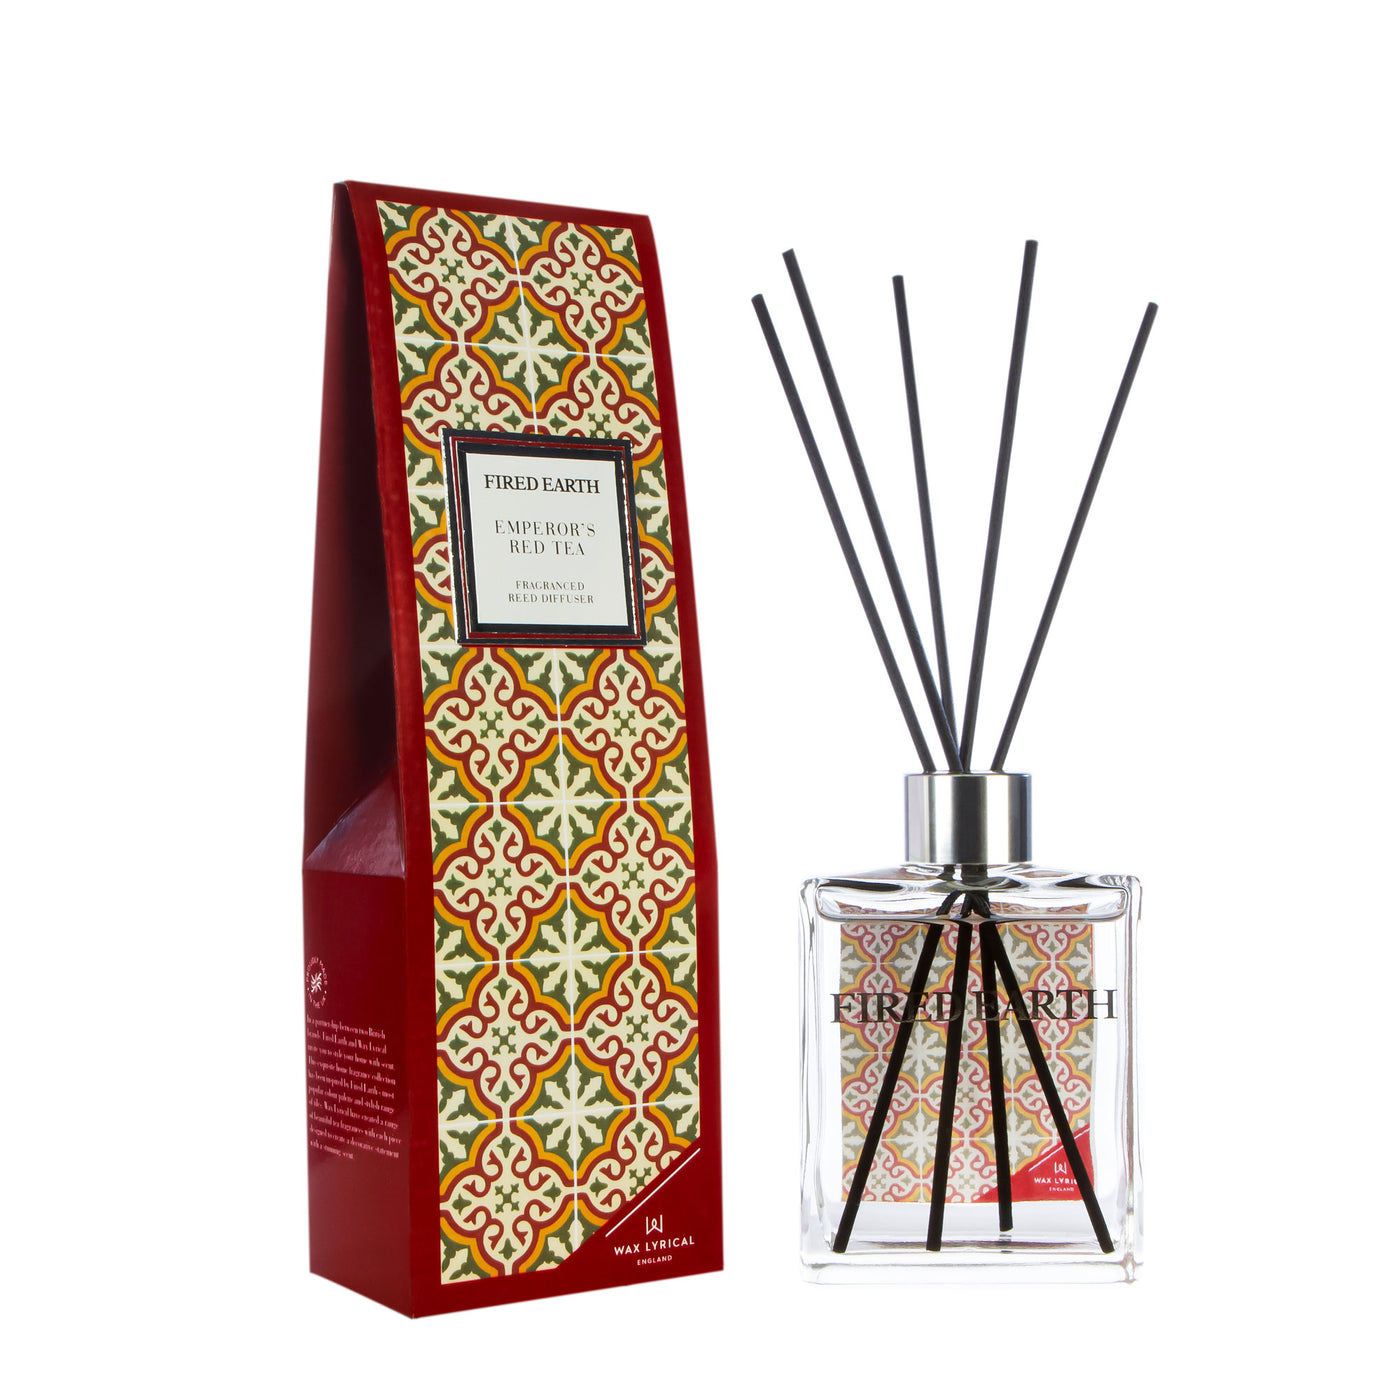 Fired Earth Room Diffuser 180mL, Emperors Red Tea